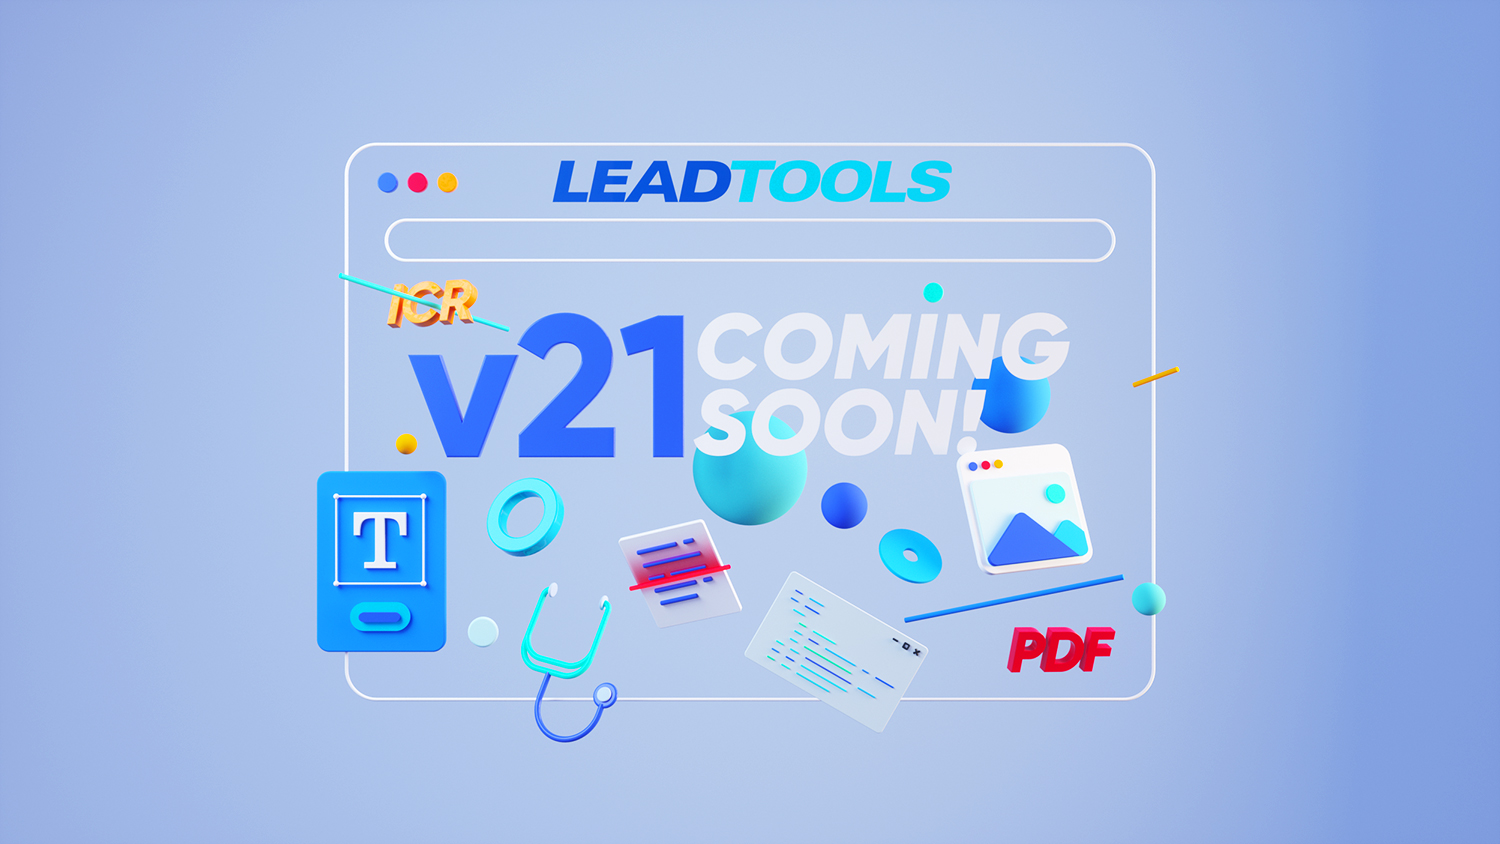 LEADTOOLS V21 Coming Soon